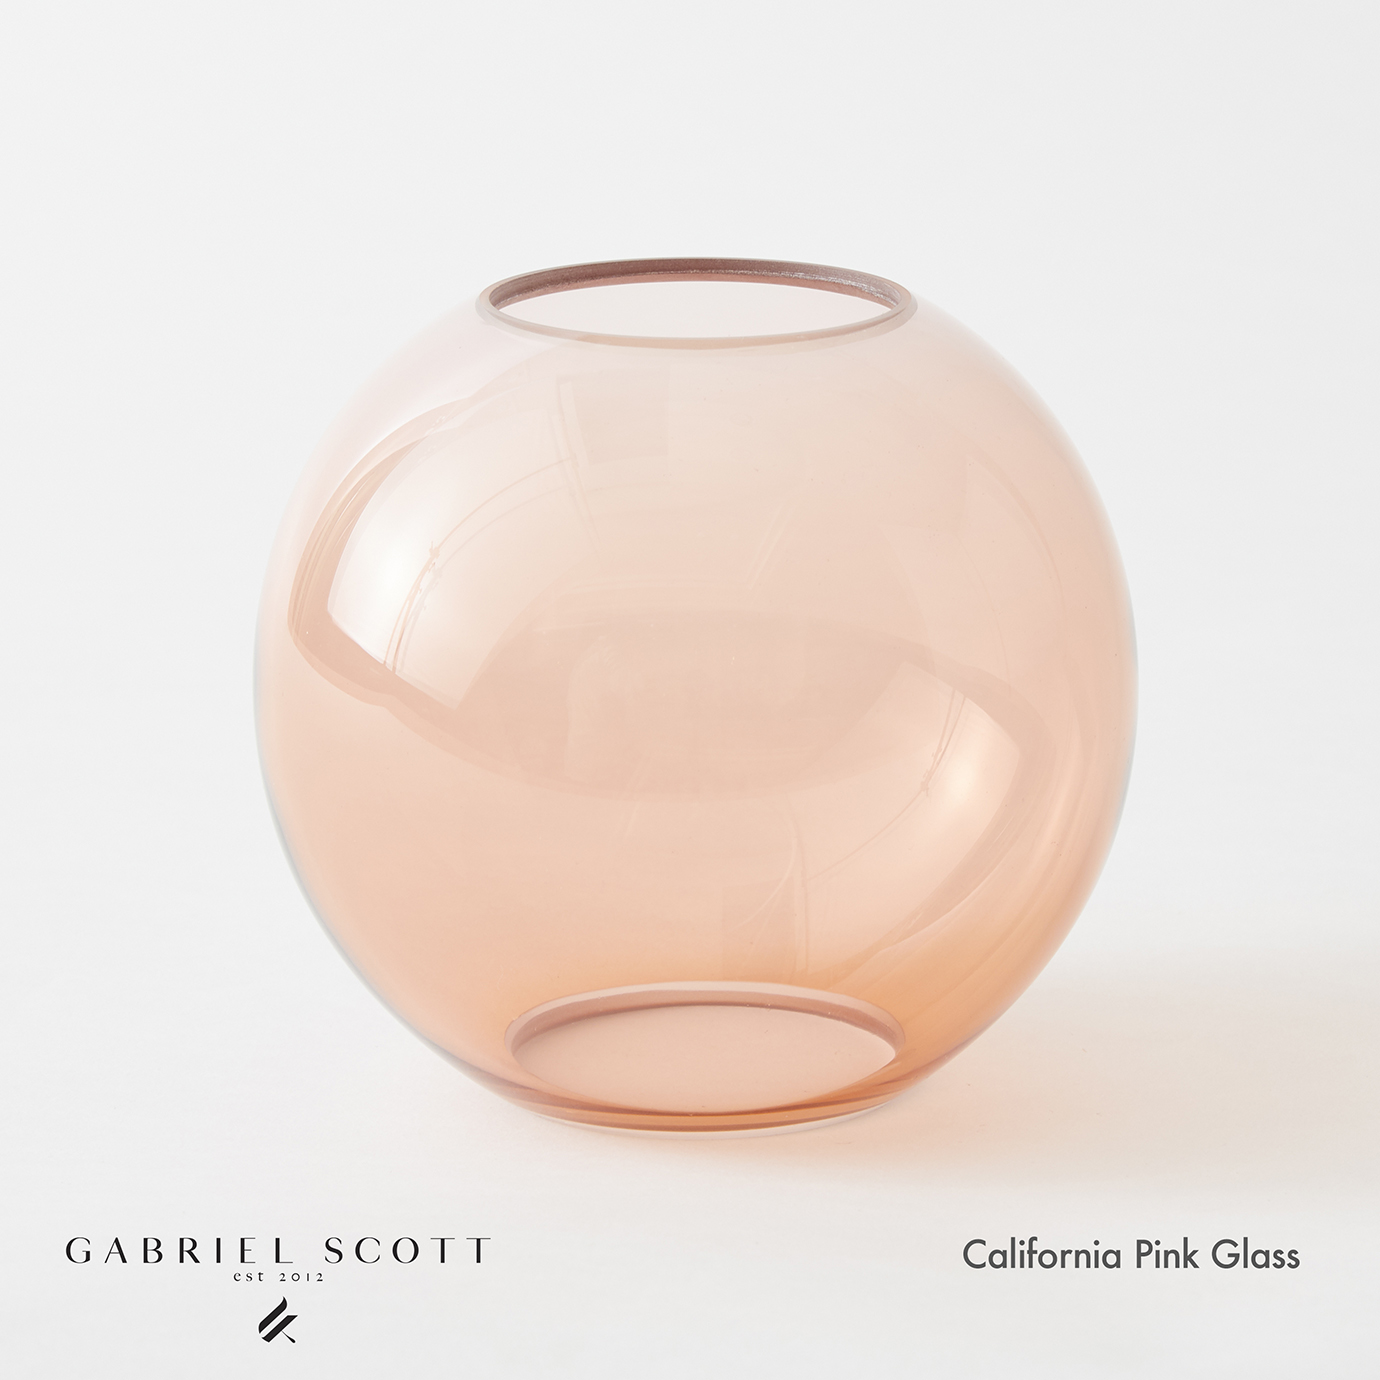 California Pink Glass - GABRIEL SCOTT.jpg